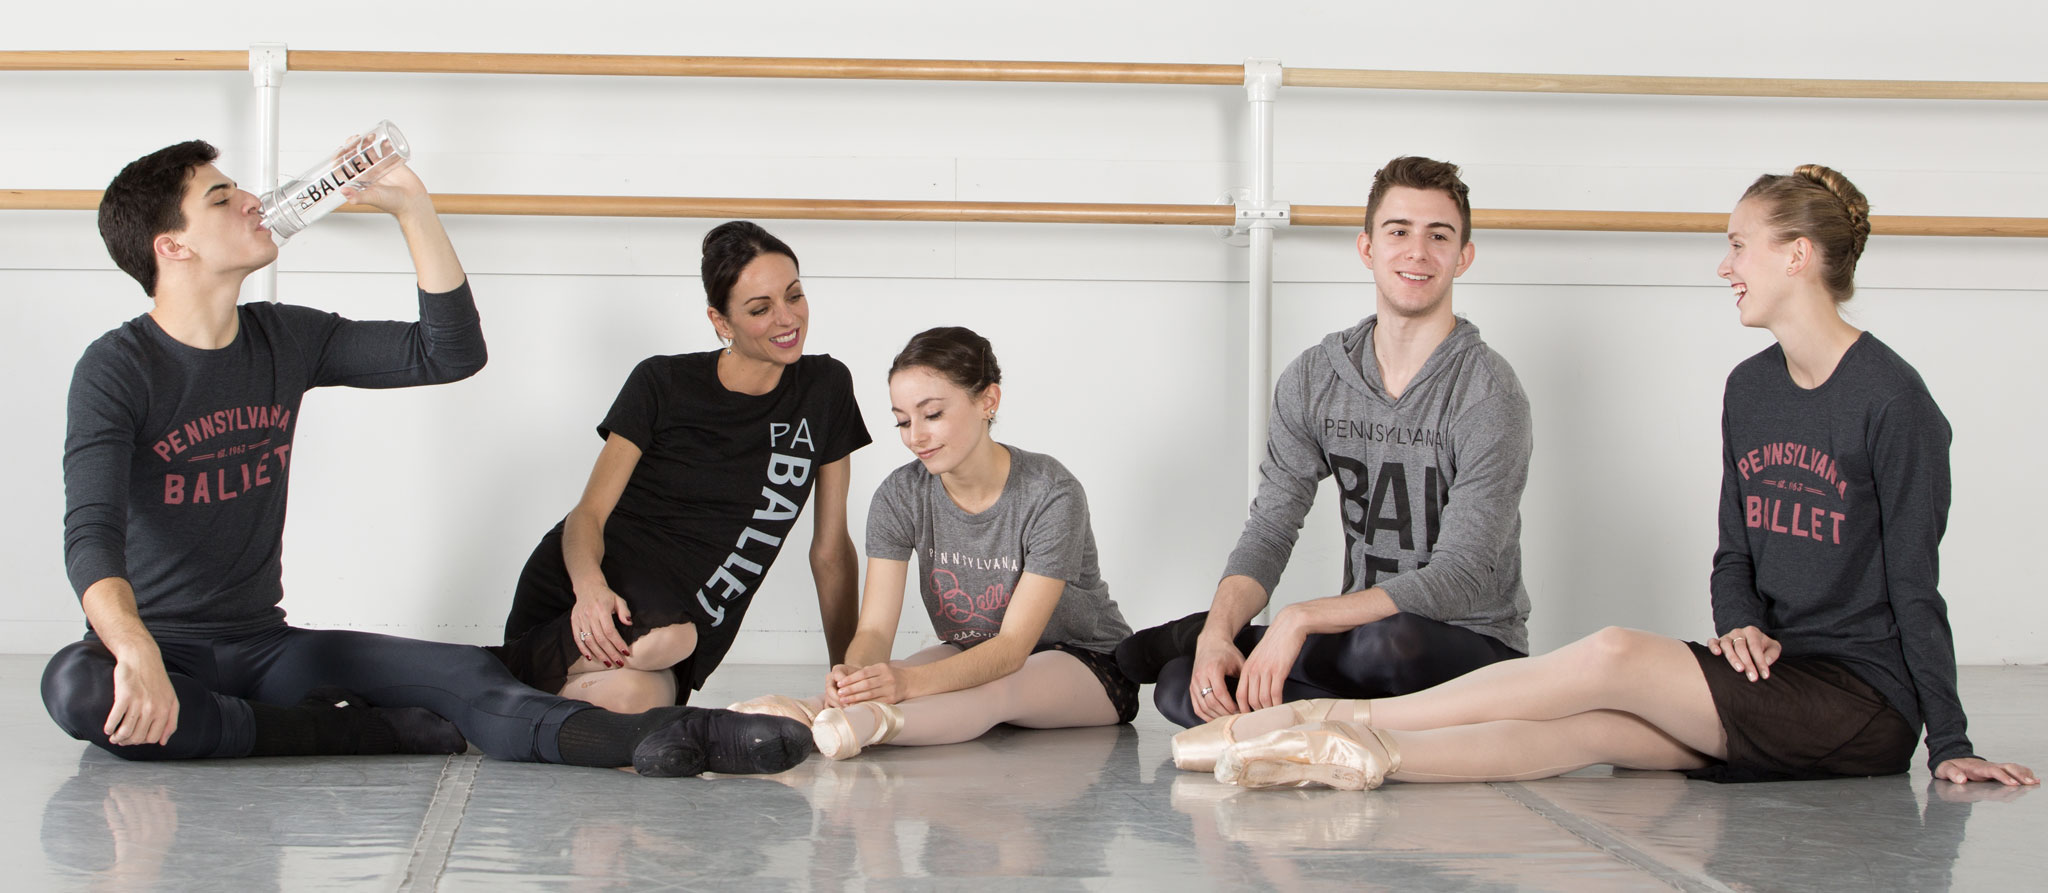 Pennsylvania Ballet dancers stretching